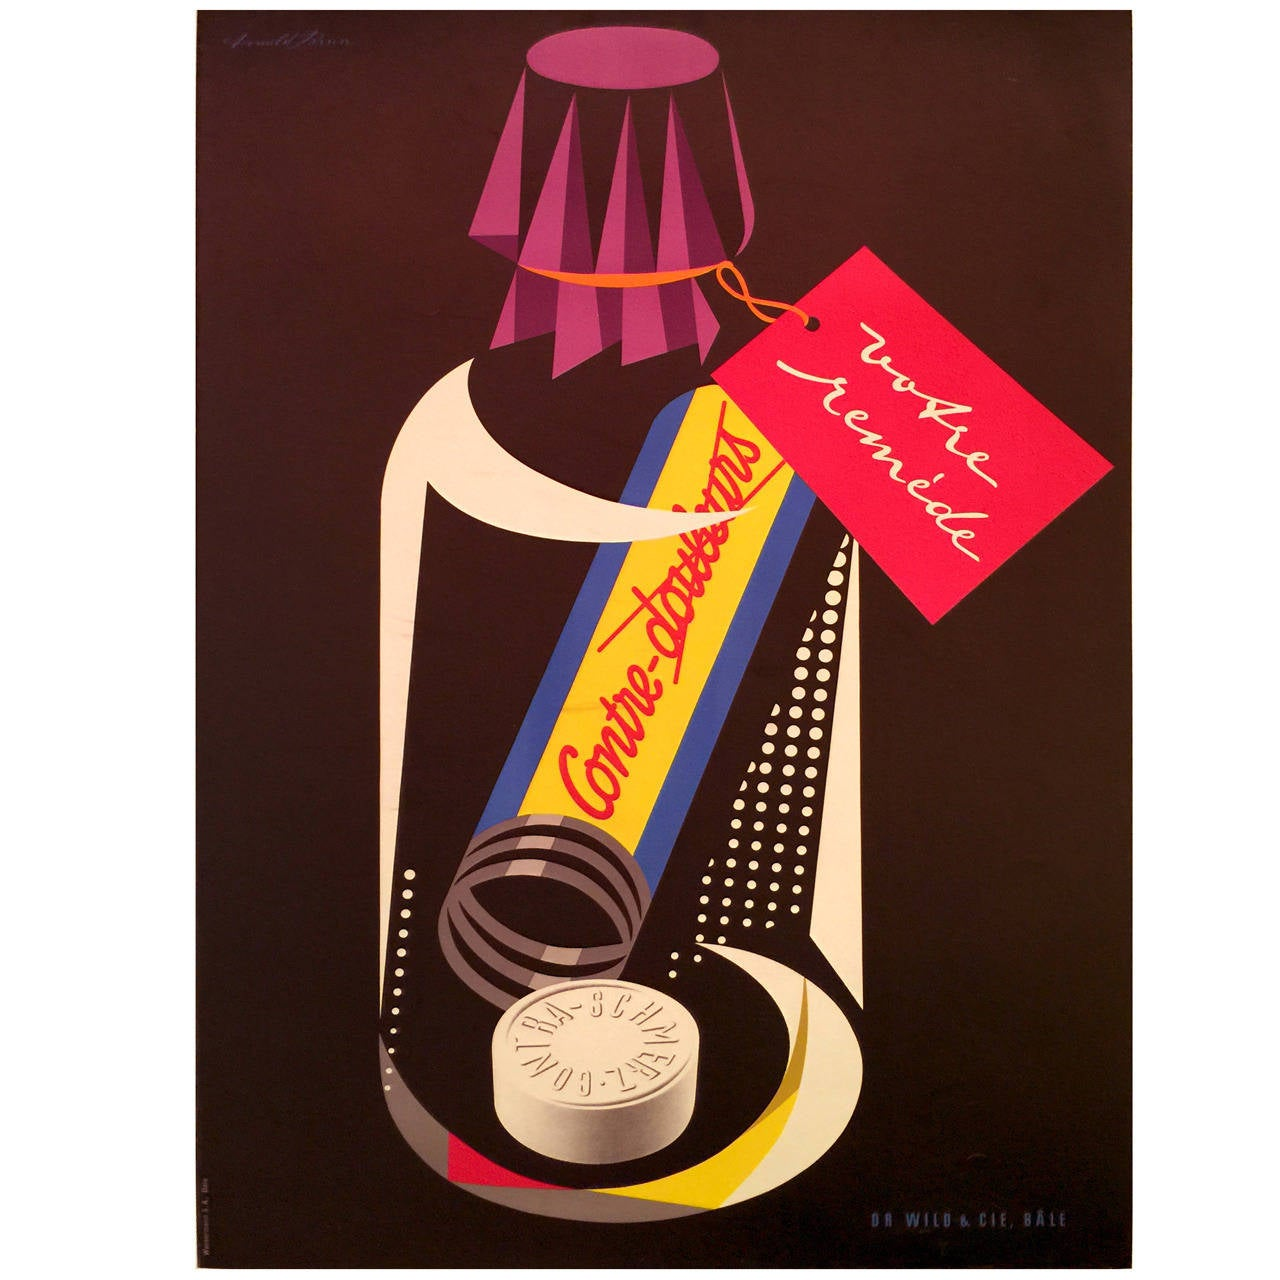 Swiss Mid-Century Modern Period Poster for Contre Douleurs by Donald Brun, 1950